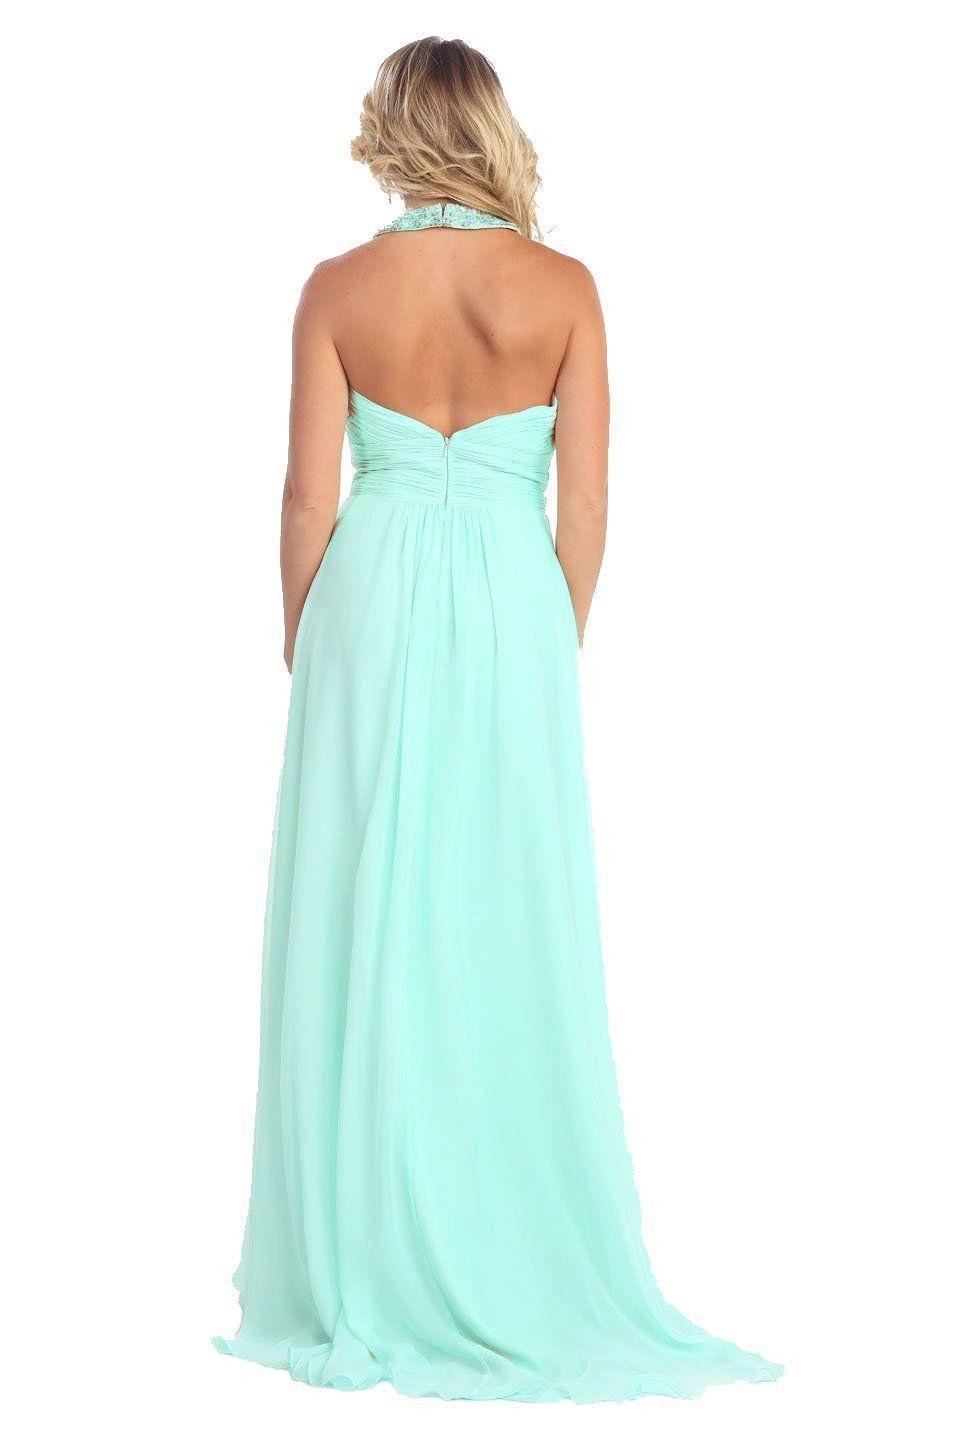 Halter top long plus size evening formal gown groom products